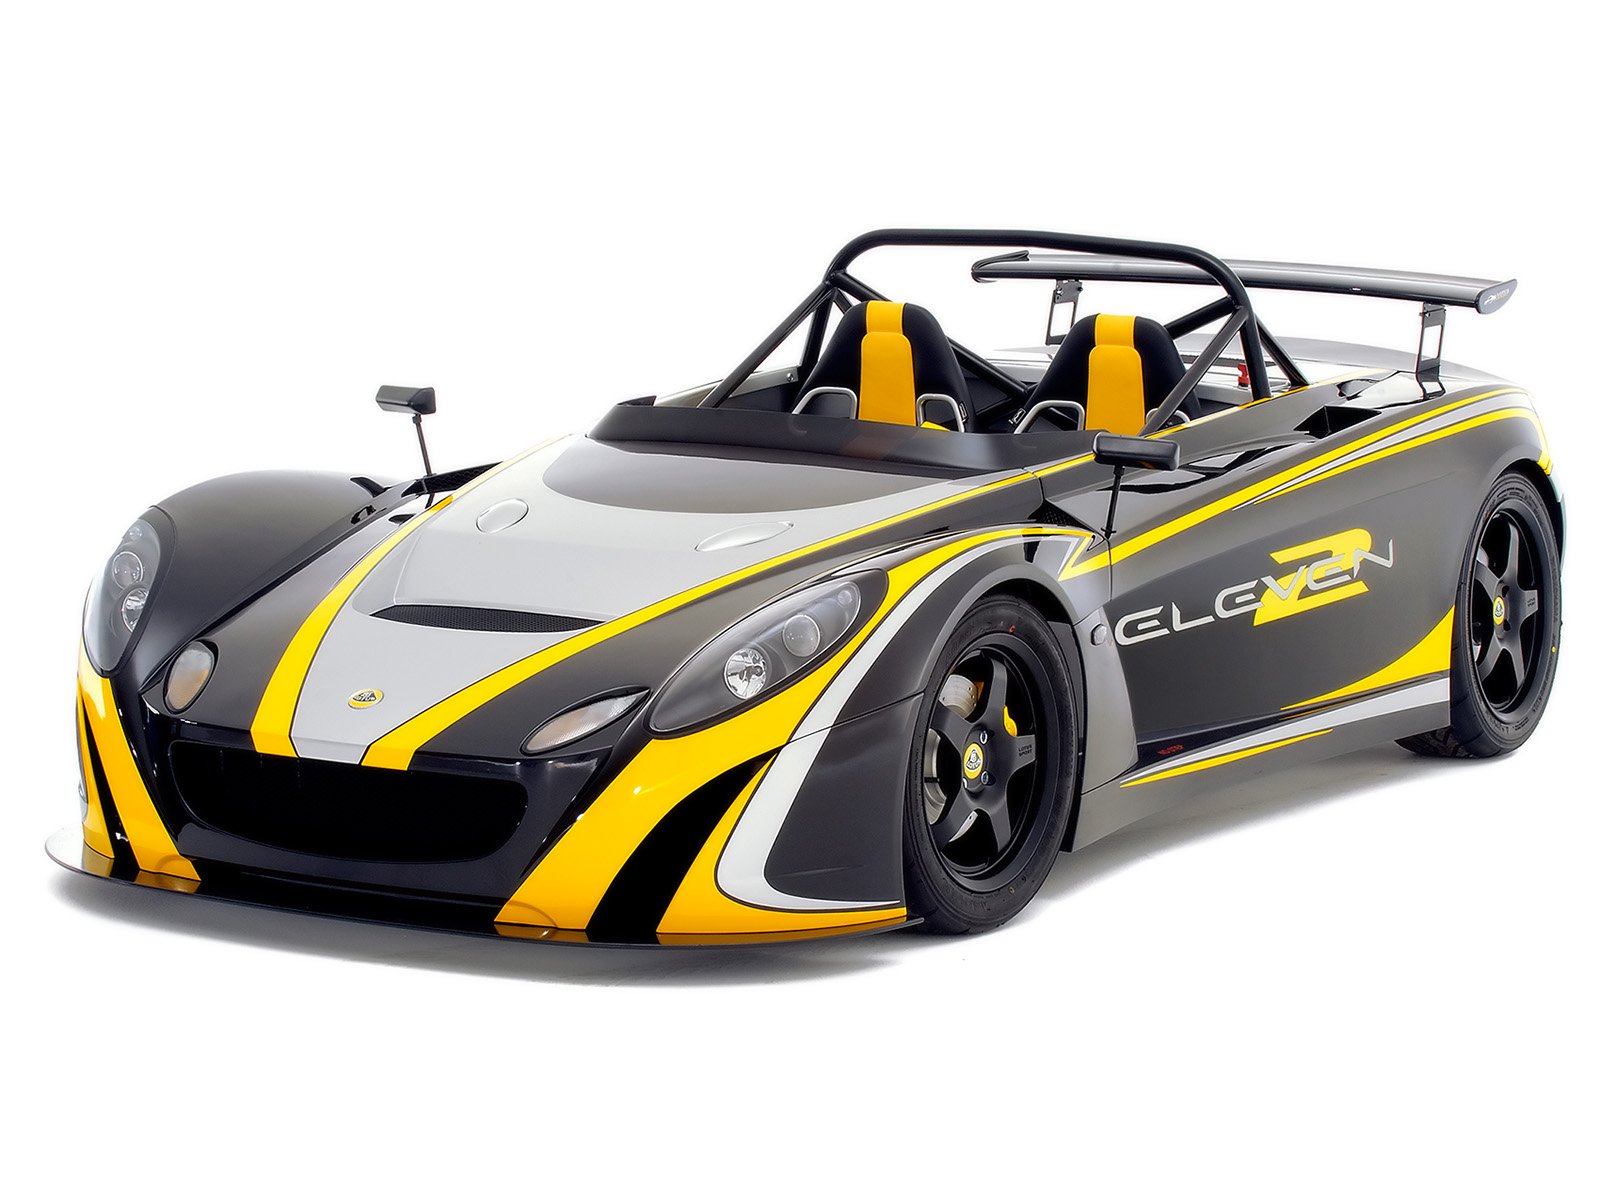 Lotus 2-Eleven photos - PhotoGallery with 8 pics| CarsBase.com